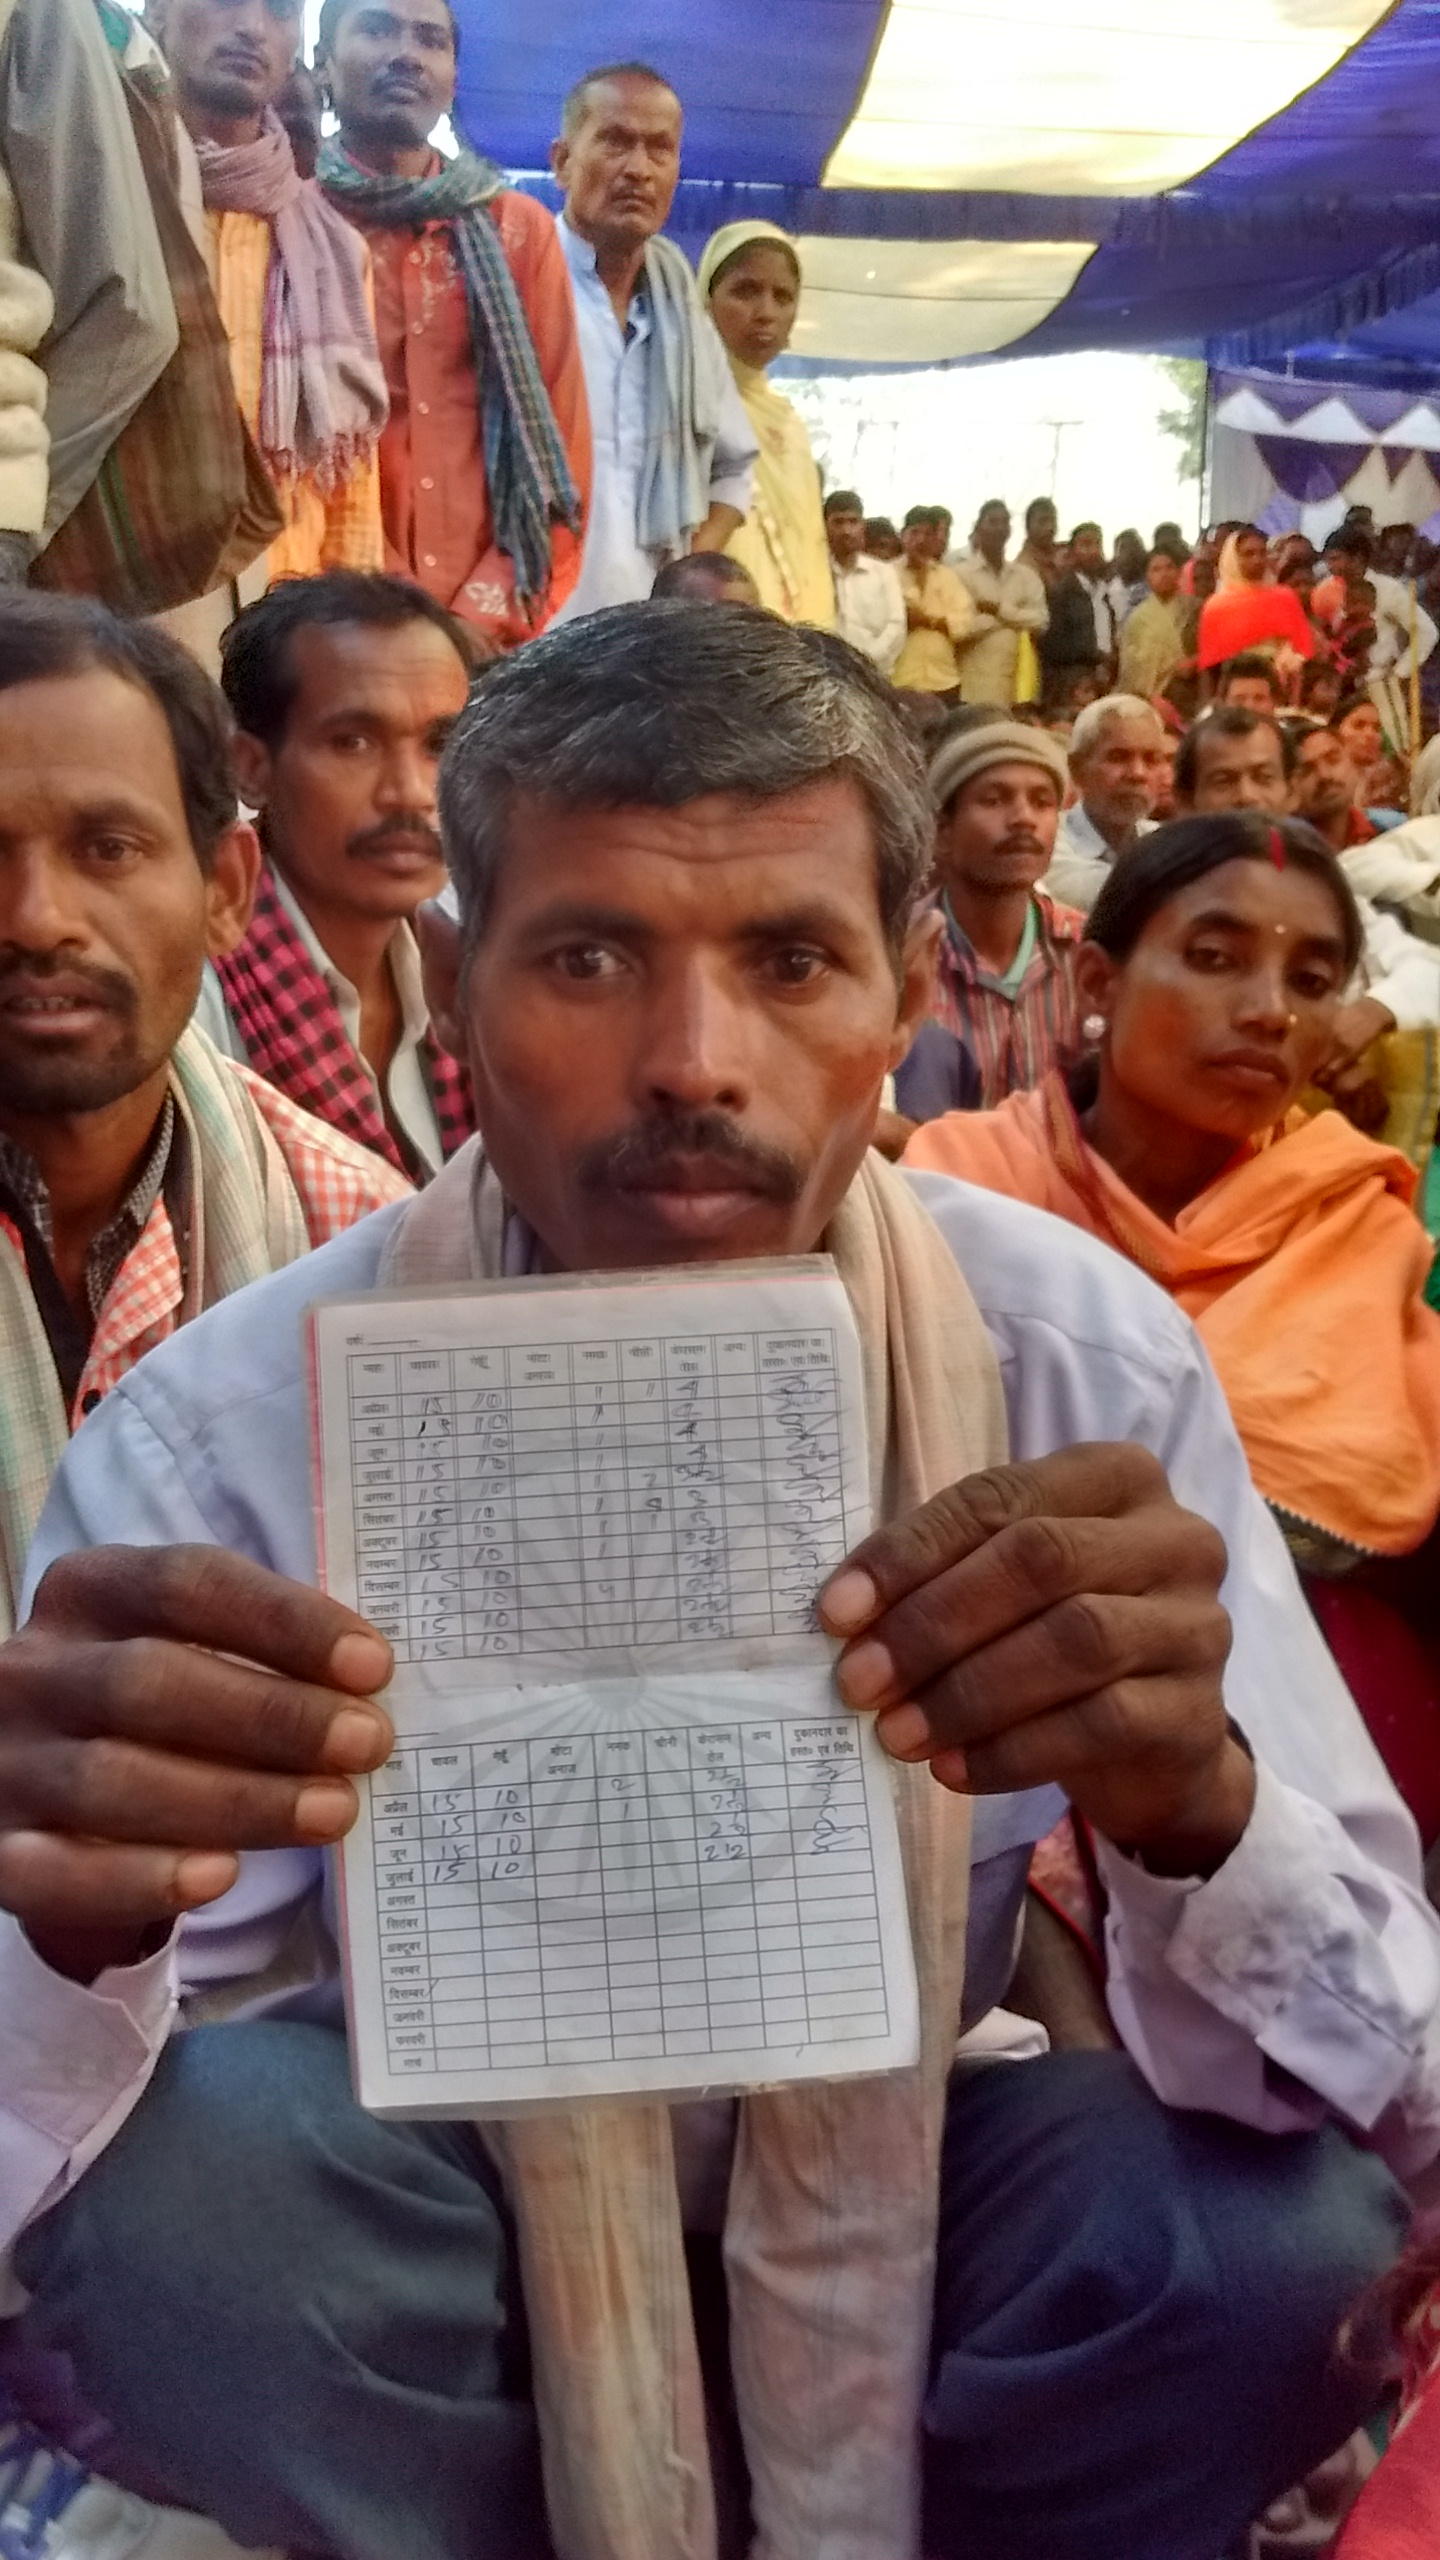 Durga Singh's family's ration card was cancelled after his wife, to whose Aadhaar the card was linked, died. Photo credit: Anumeha Yadav